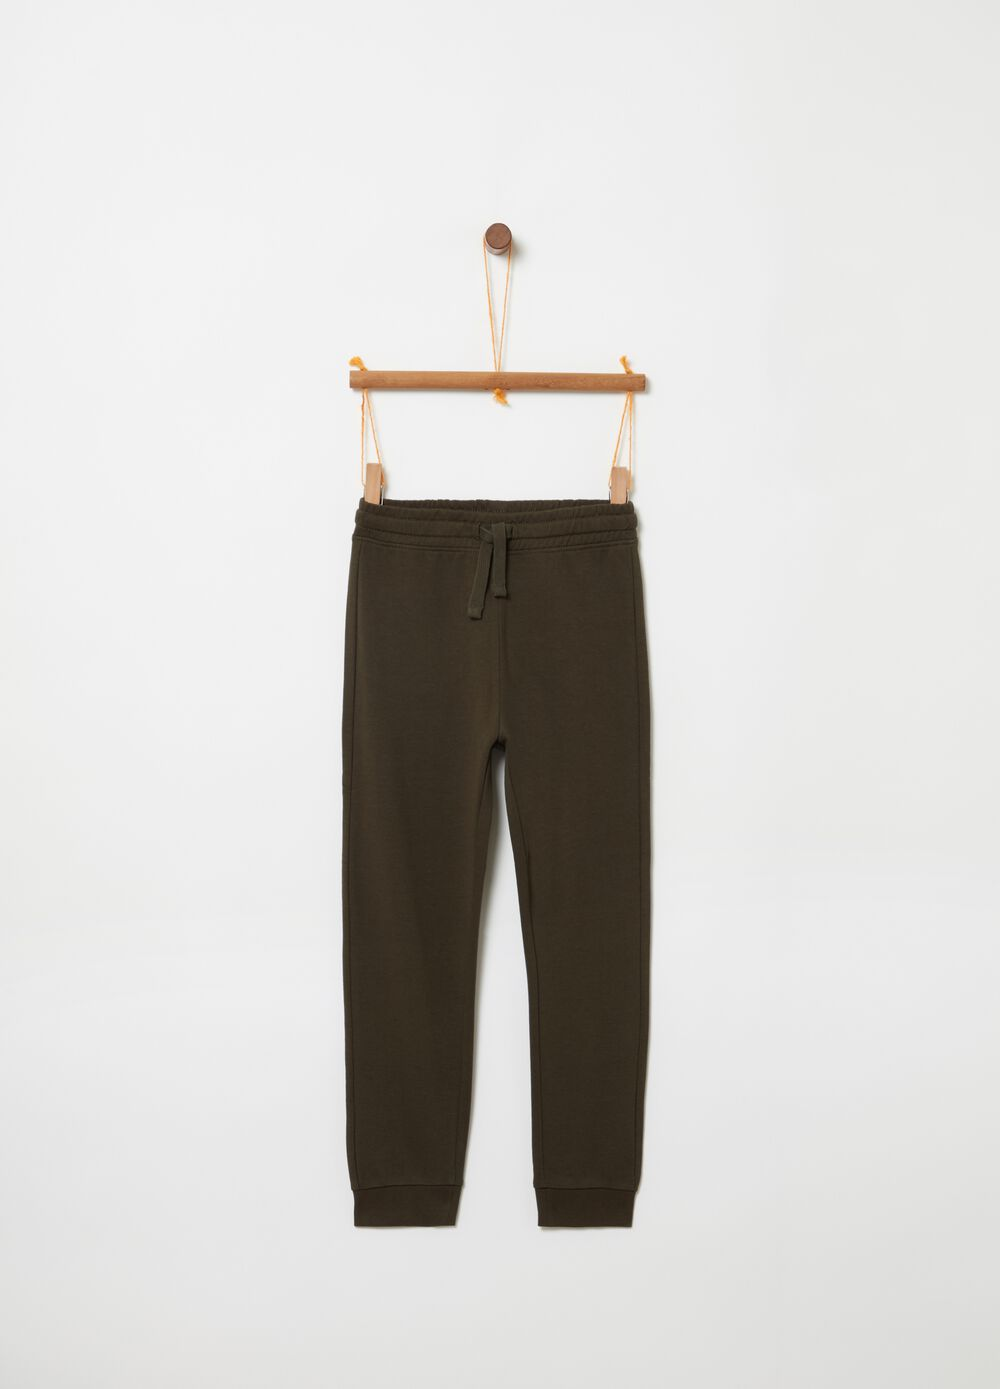 Trousers in 100% cotton with drawstring and pocket